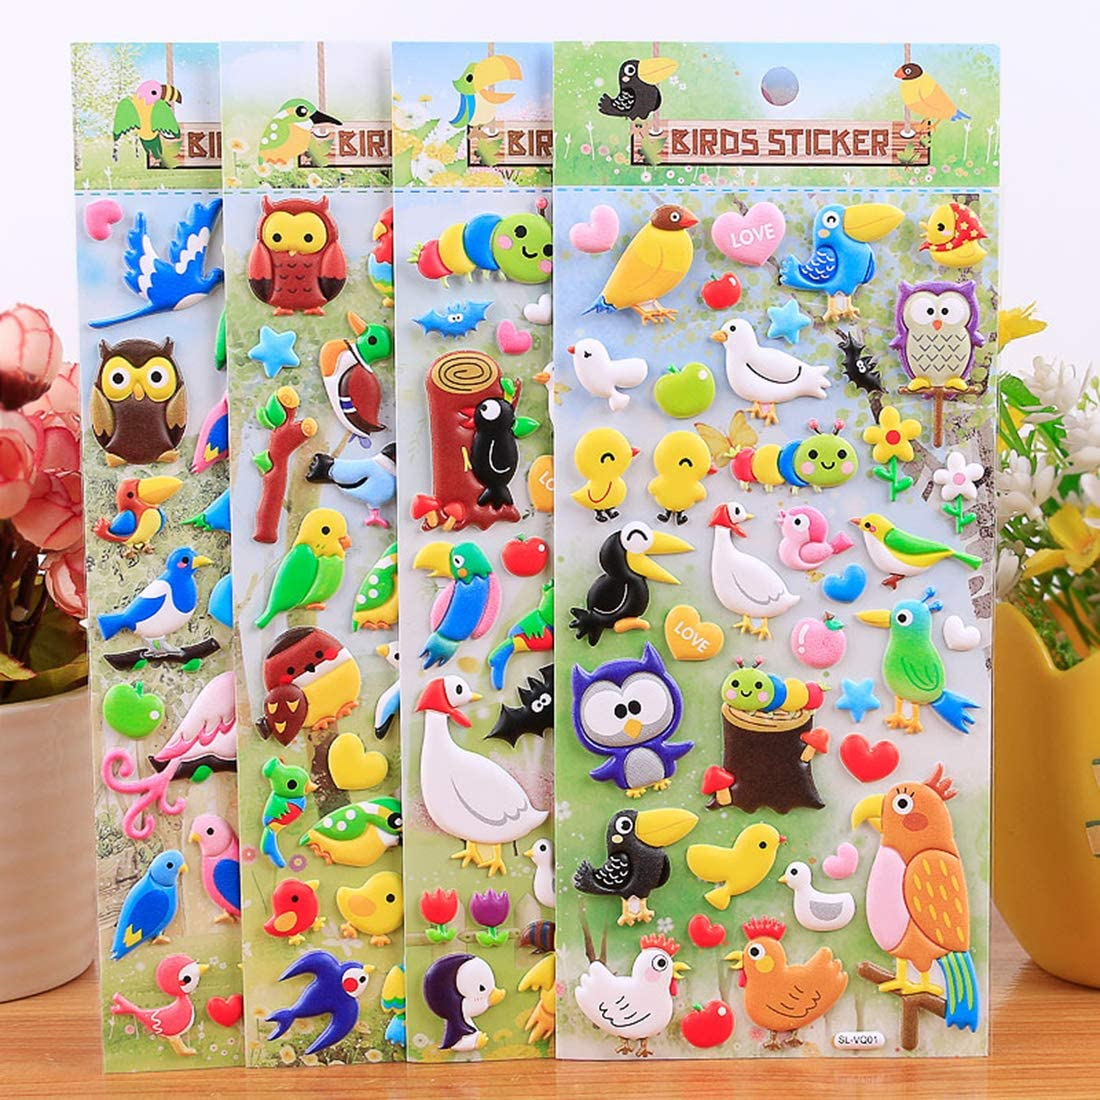 HighMount Happy Bird Stickers 4 Sheets with Woodpecker Seagull Faces Kid Stickers Deacals for Craft Scrapbooking Party Favors Crow 180 Stickers Cuckoo Peacock Swallow Owl Flamingo